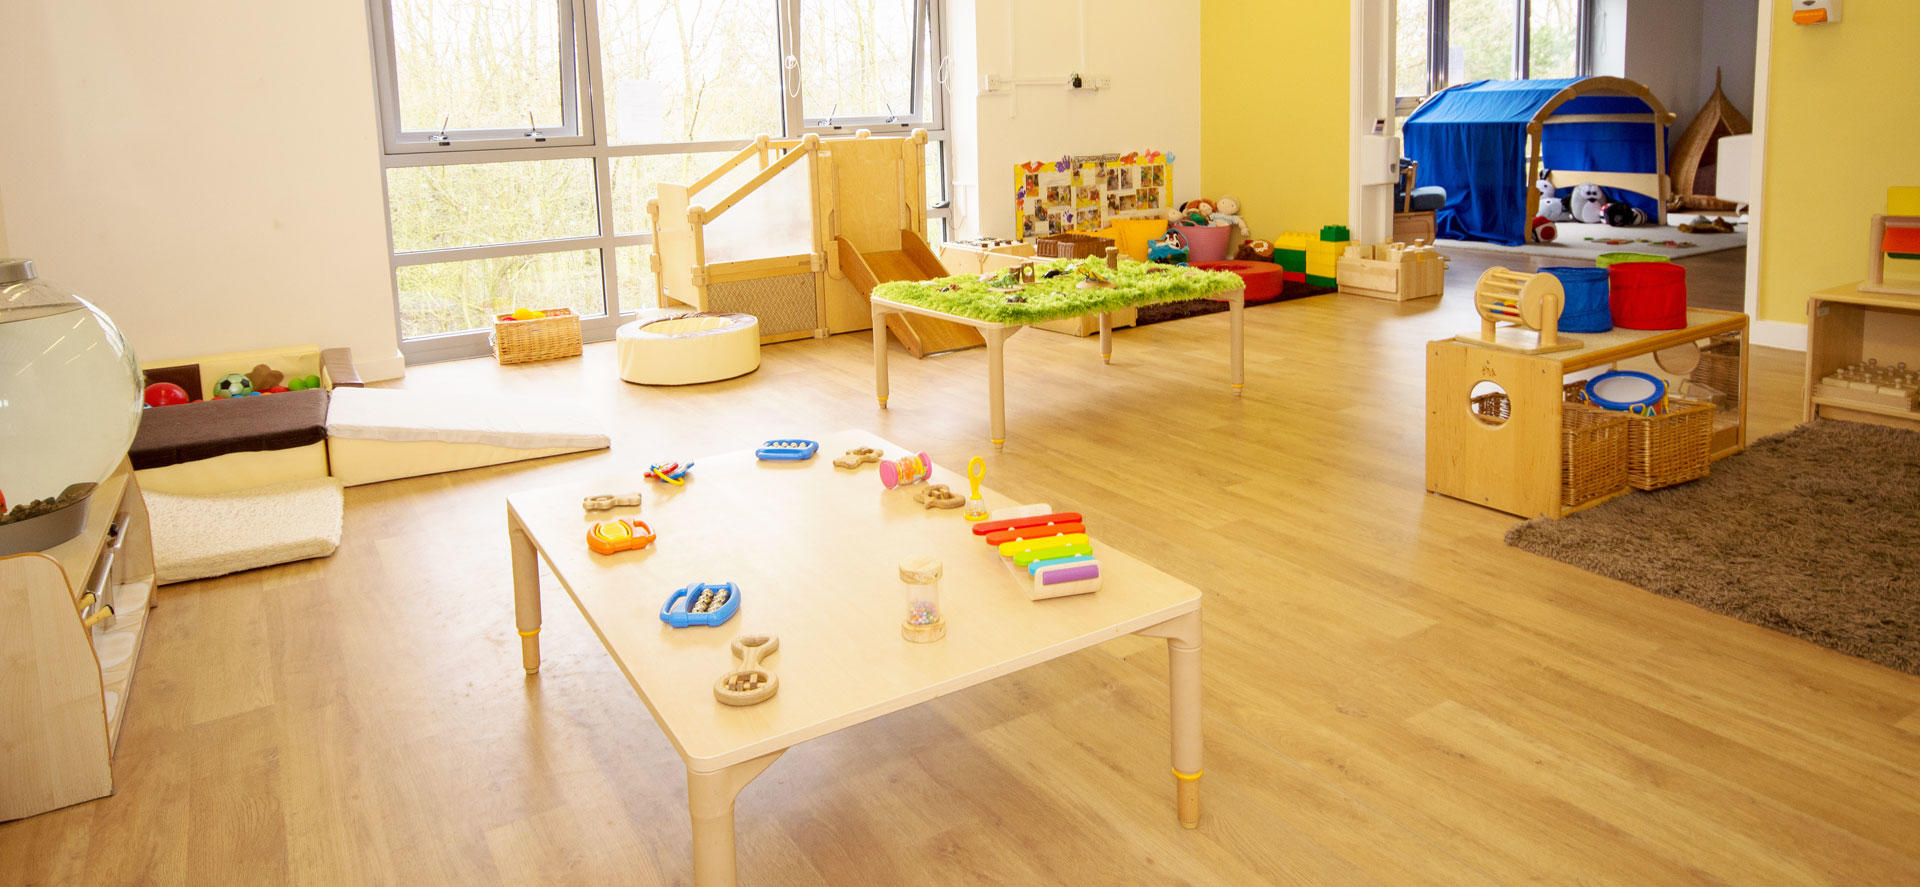 Bright Horizons Cambridge Science Park Day Nursery and Preschool